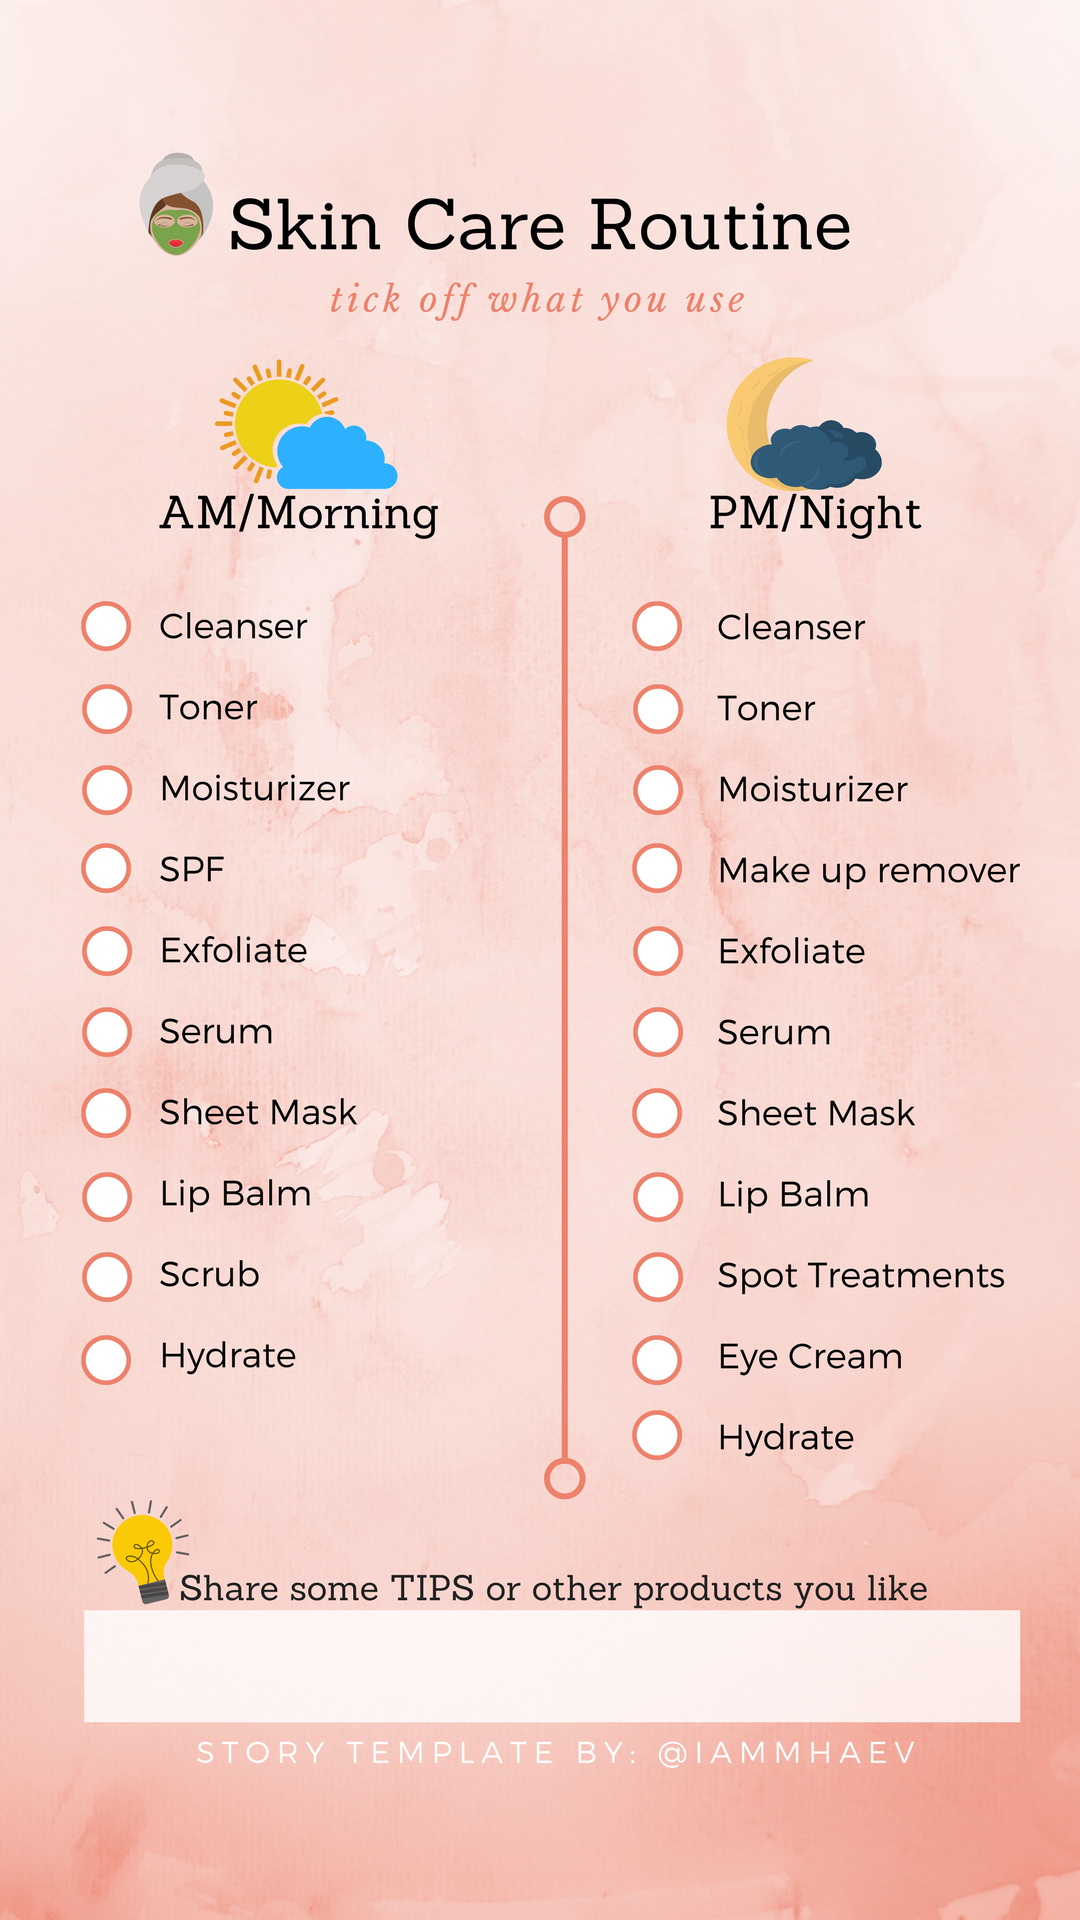 Skin Care Routine Instagram Story Templates Beauty Skin Care Skin Care Methods Organic Skin Care